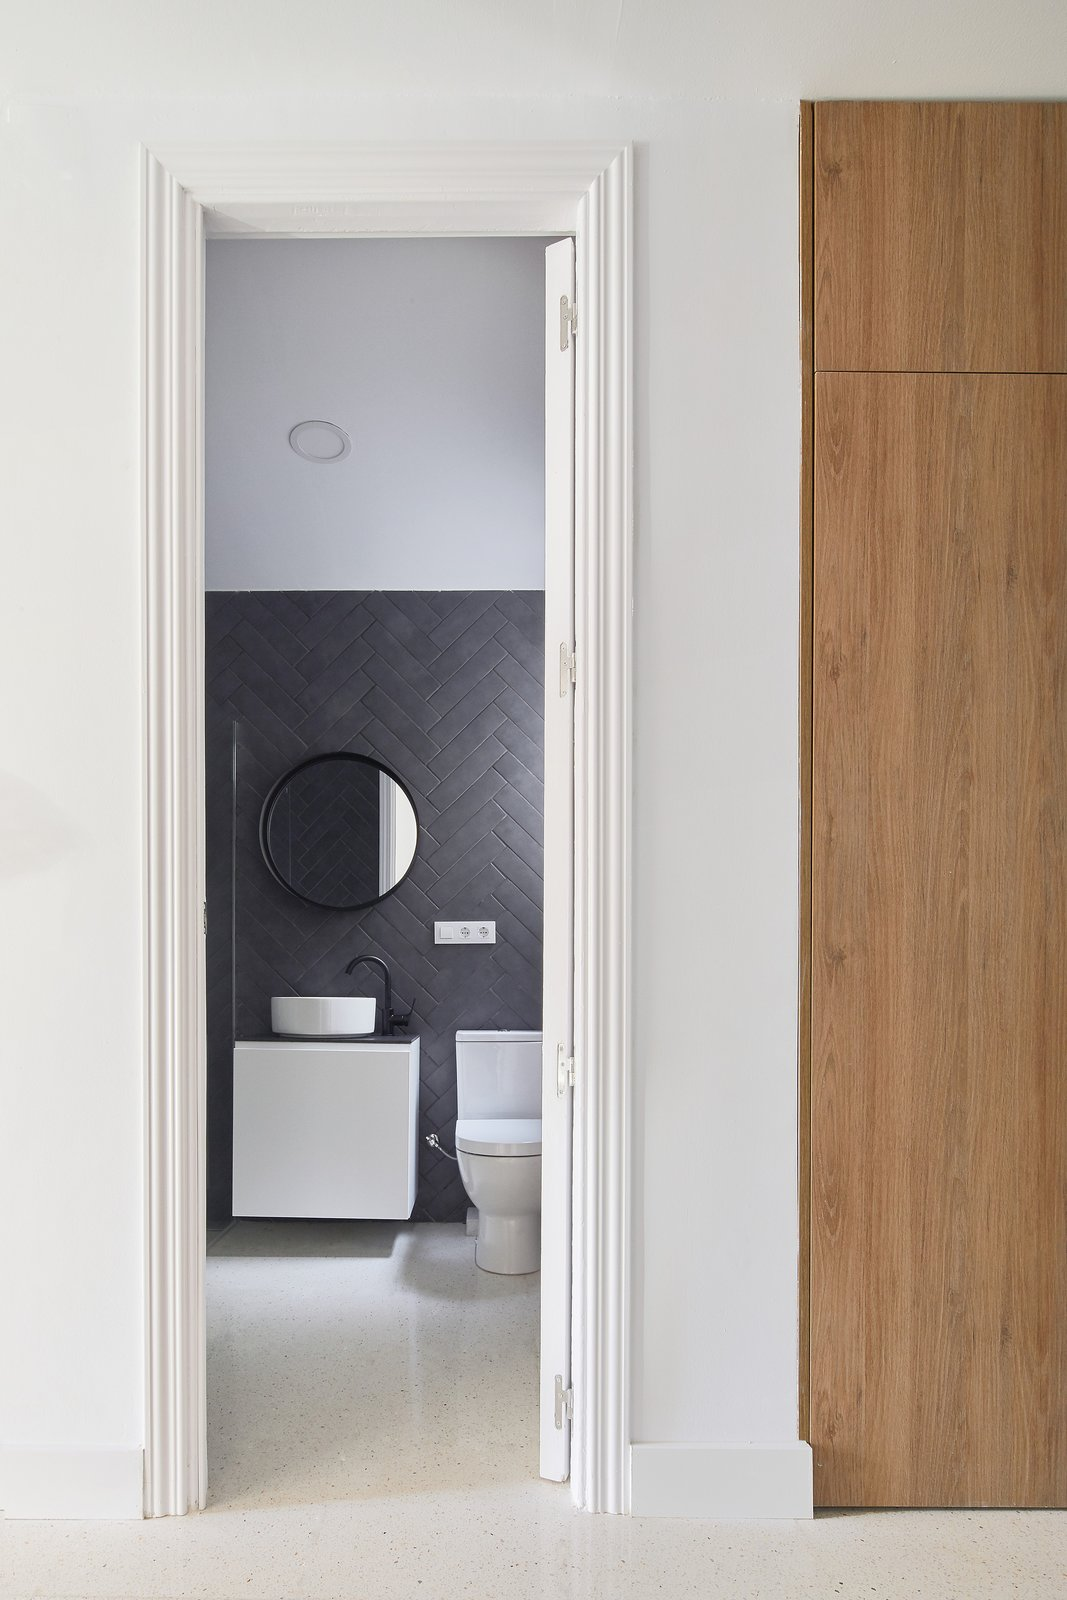 Bath Room, Vessel Sink, Recessed Lighting, Stone Tile Wall, and One Piece Toilet  Master Bath